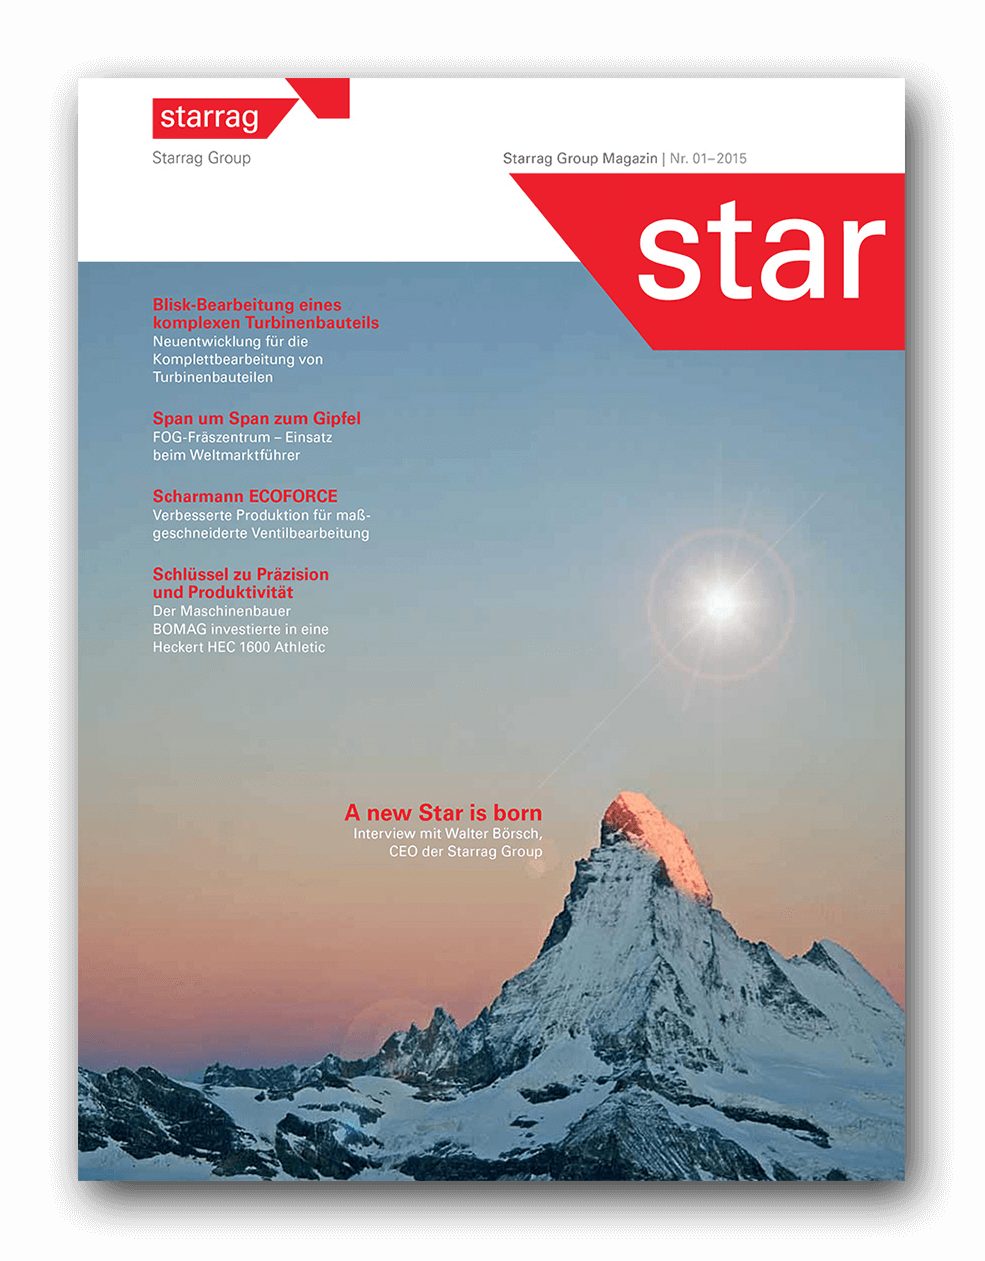 Cover Story: A new Star is born Interview with Walter Börsch, CEO of the Starrag Group